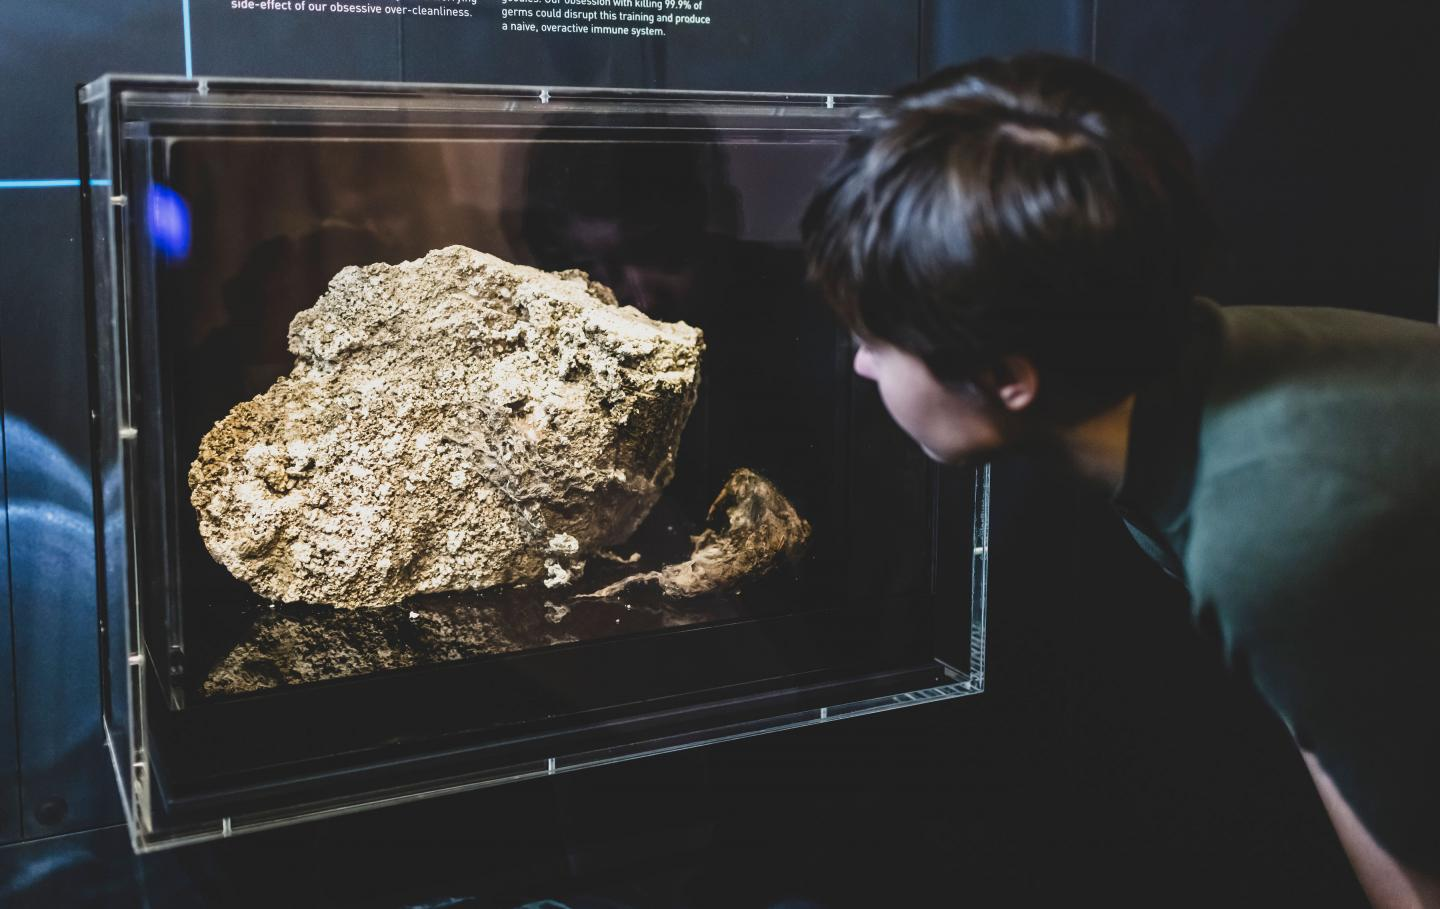 Fatberg on display in the Melbourne Museum